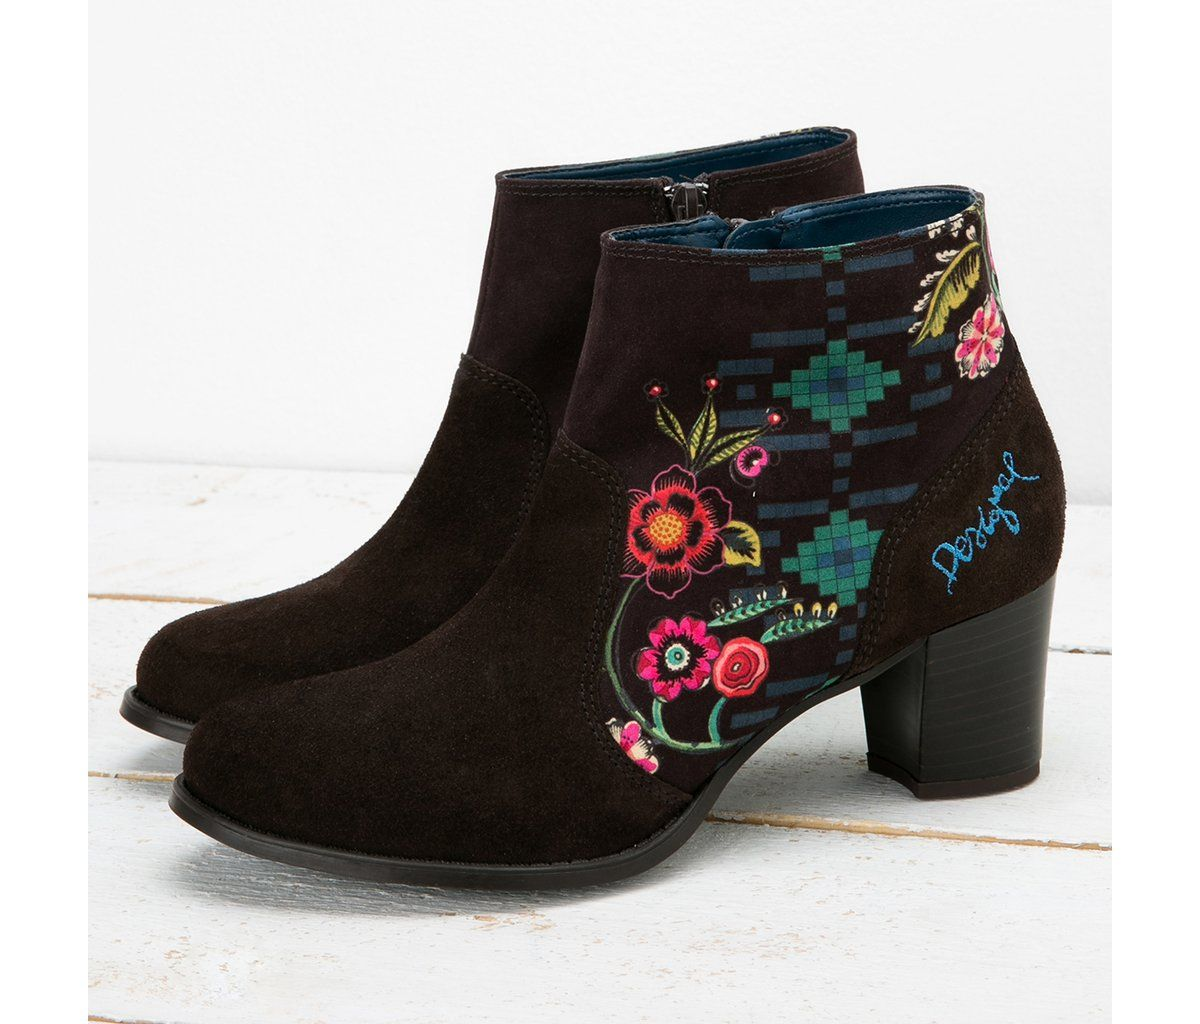 Brown high-heel boots | Desigual.com